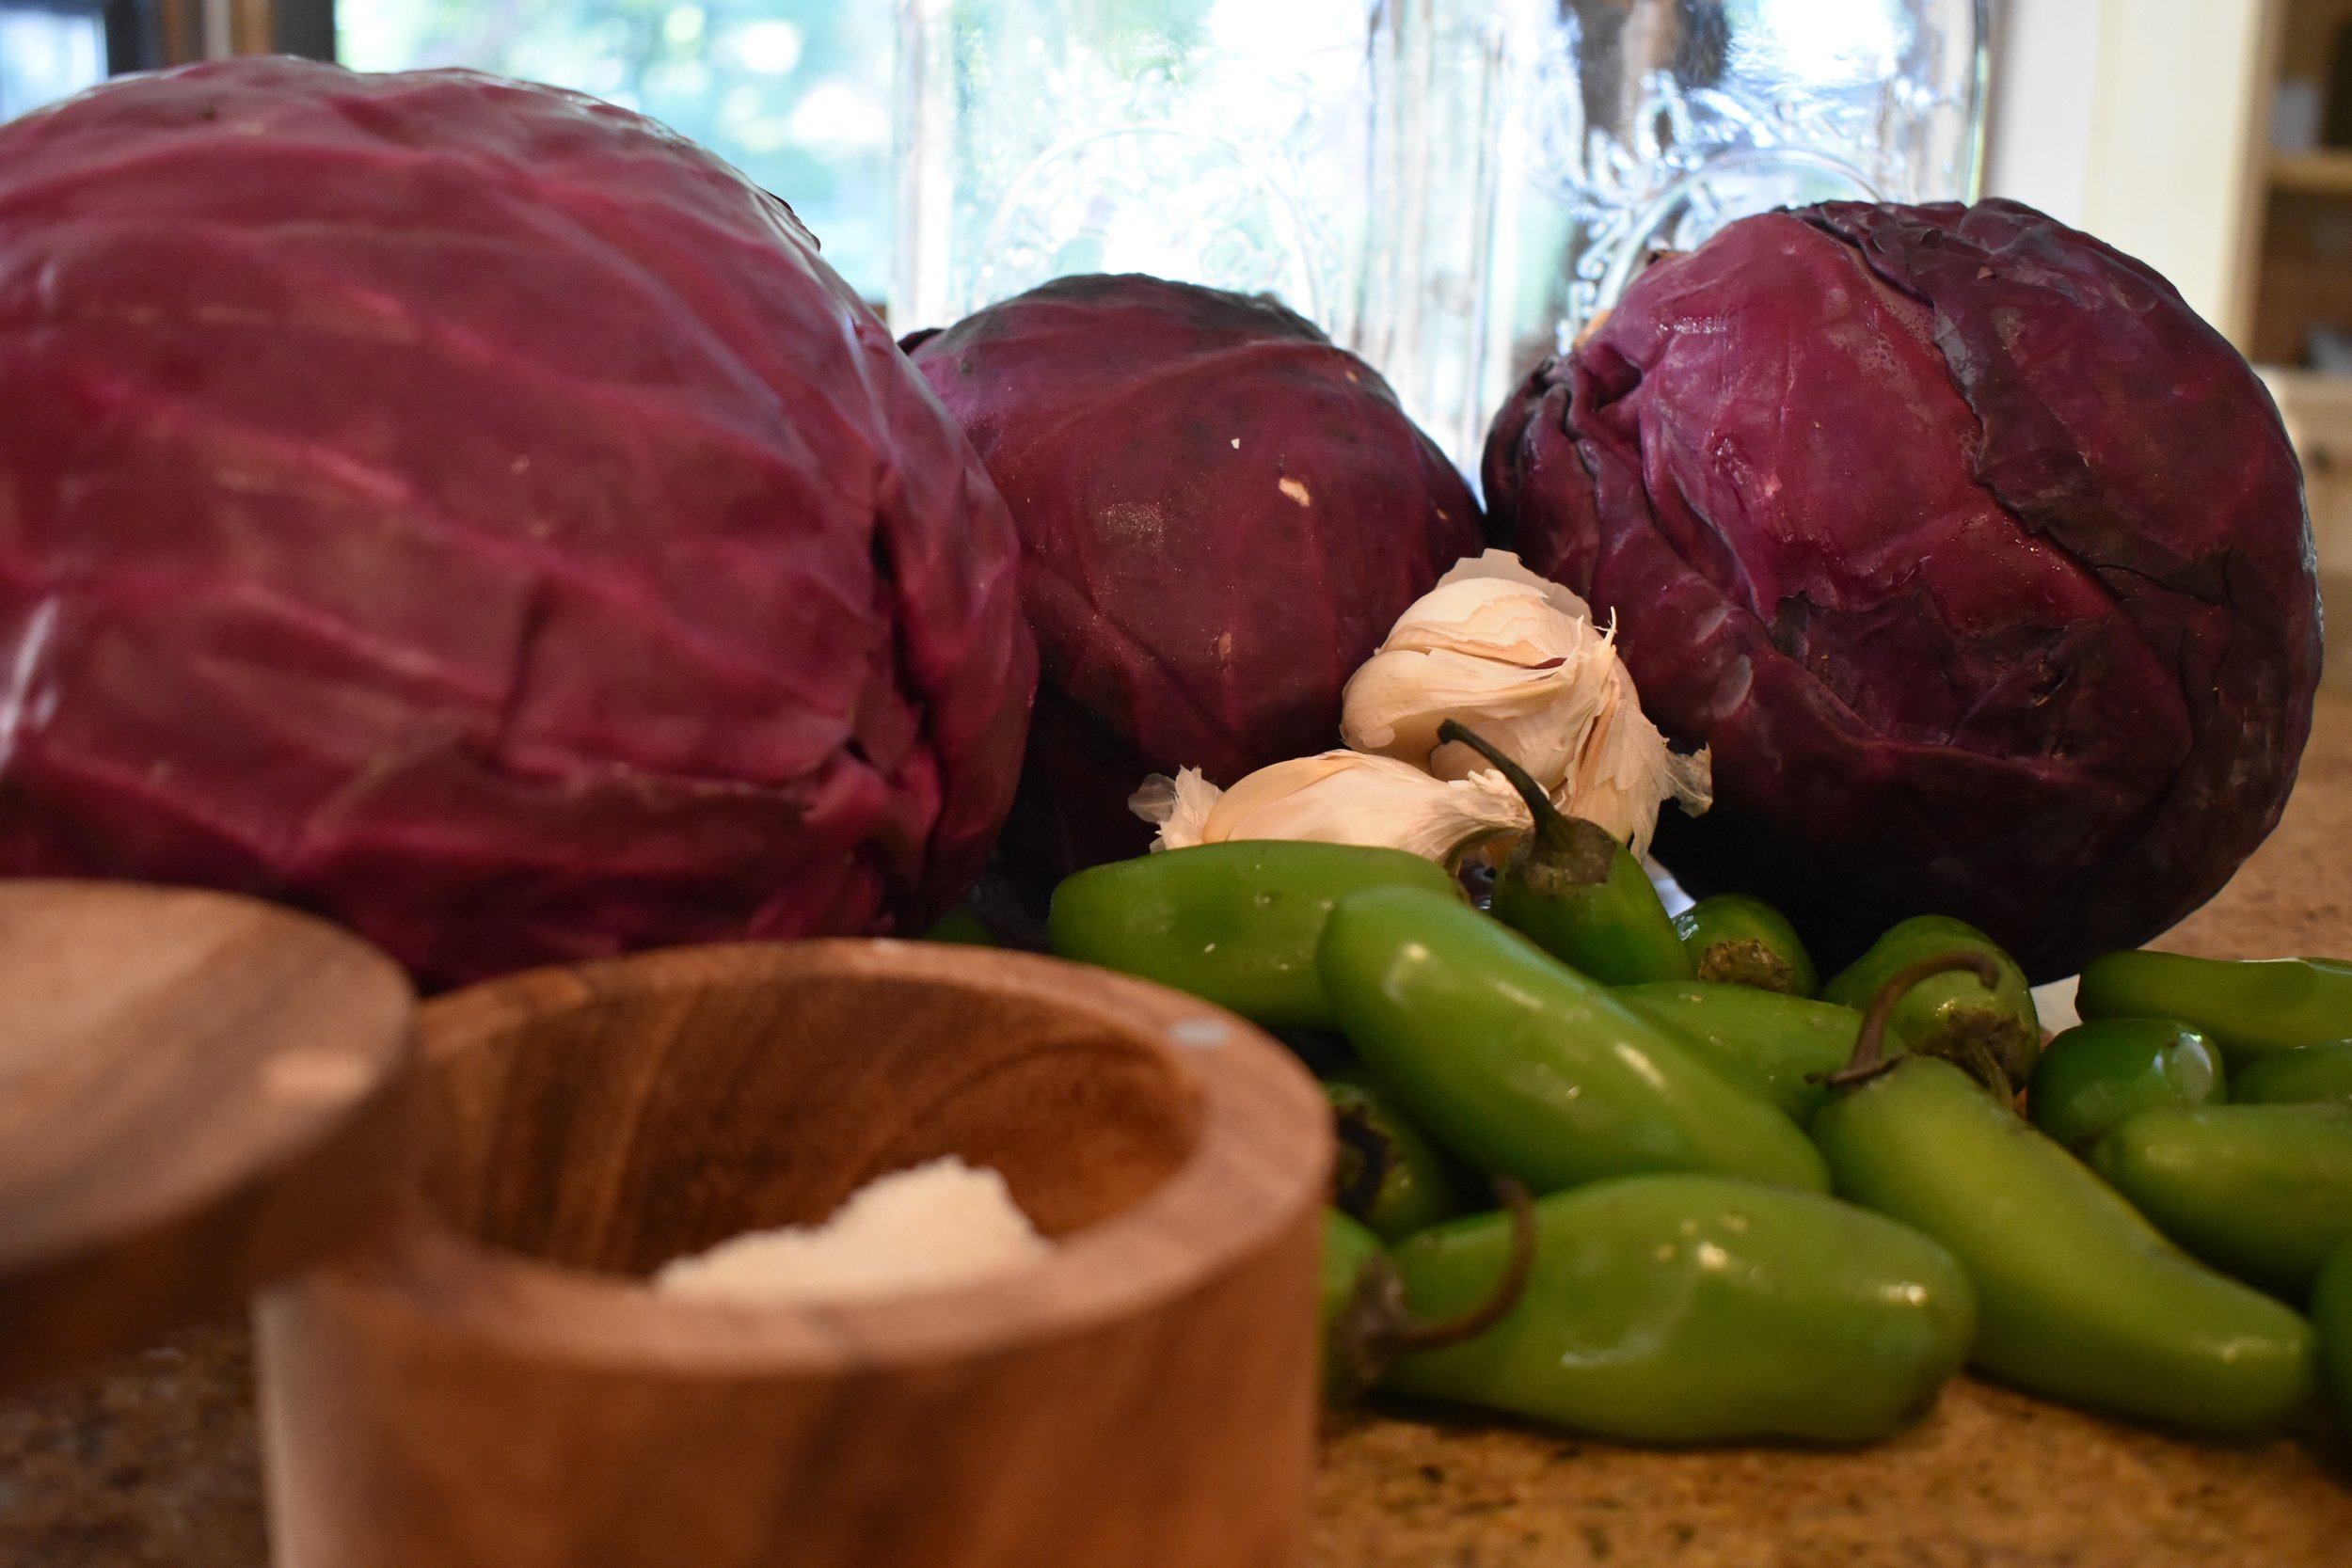 All this becomes sauerkraut perfection in a just a few short days.